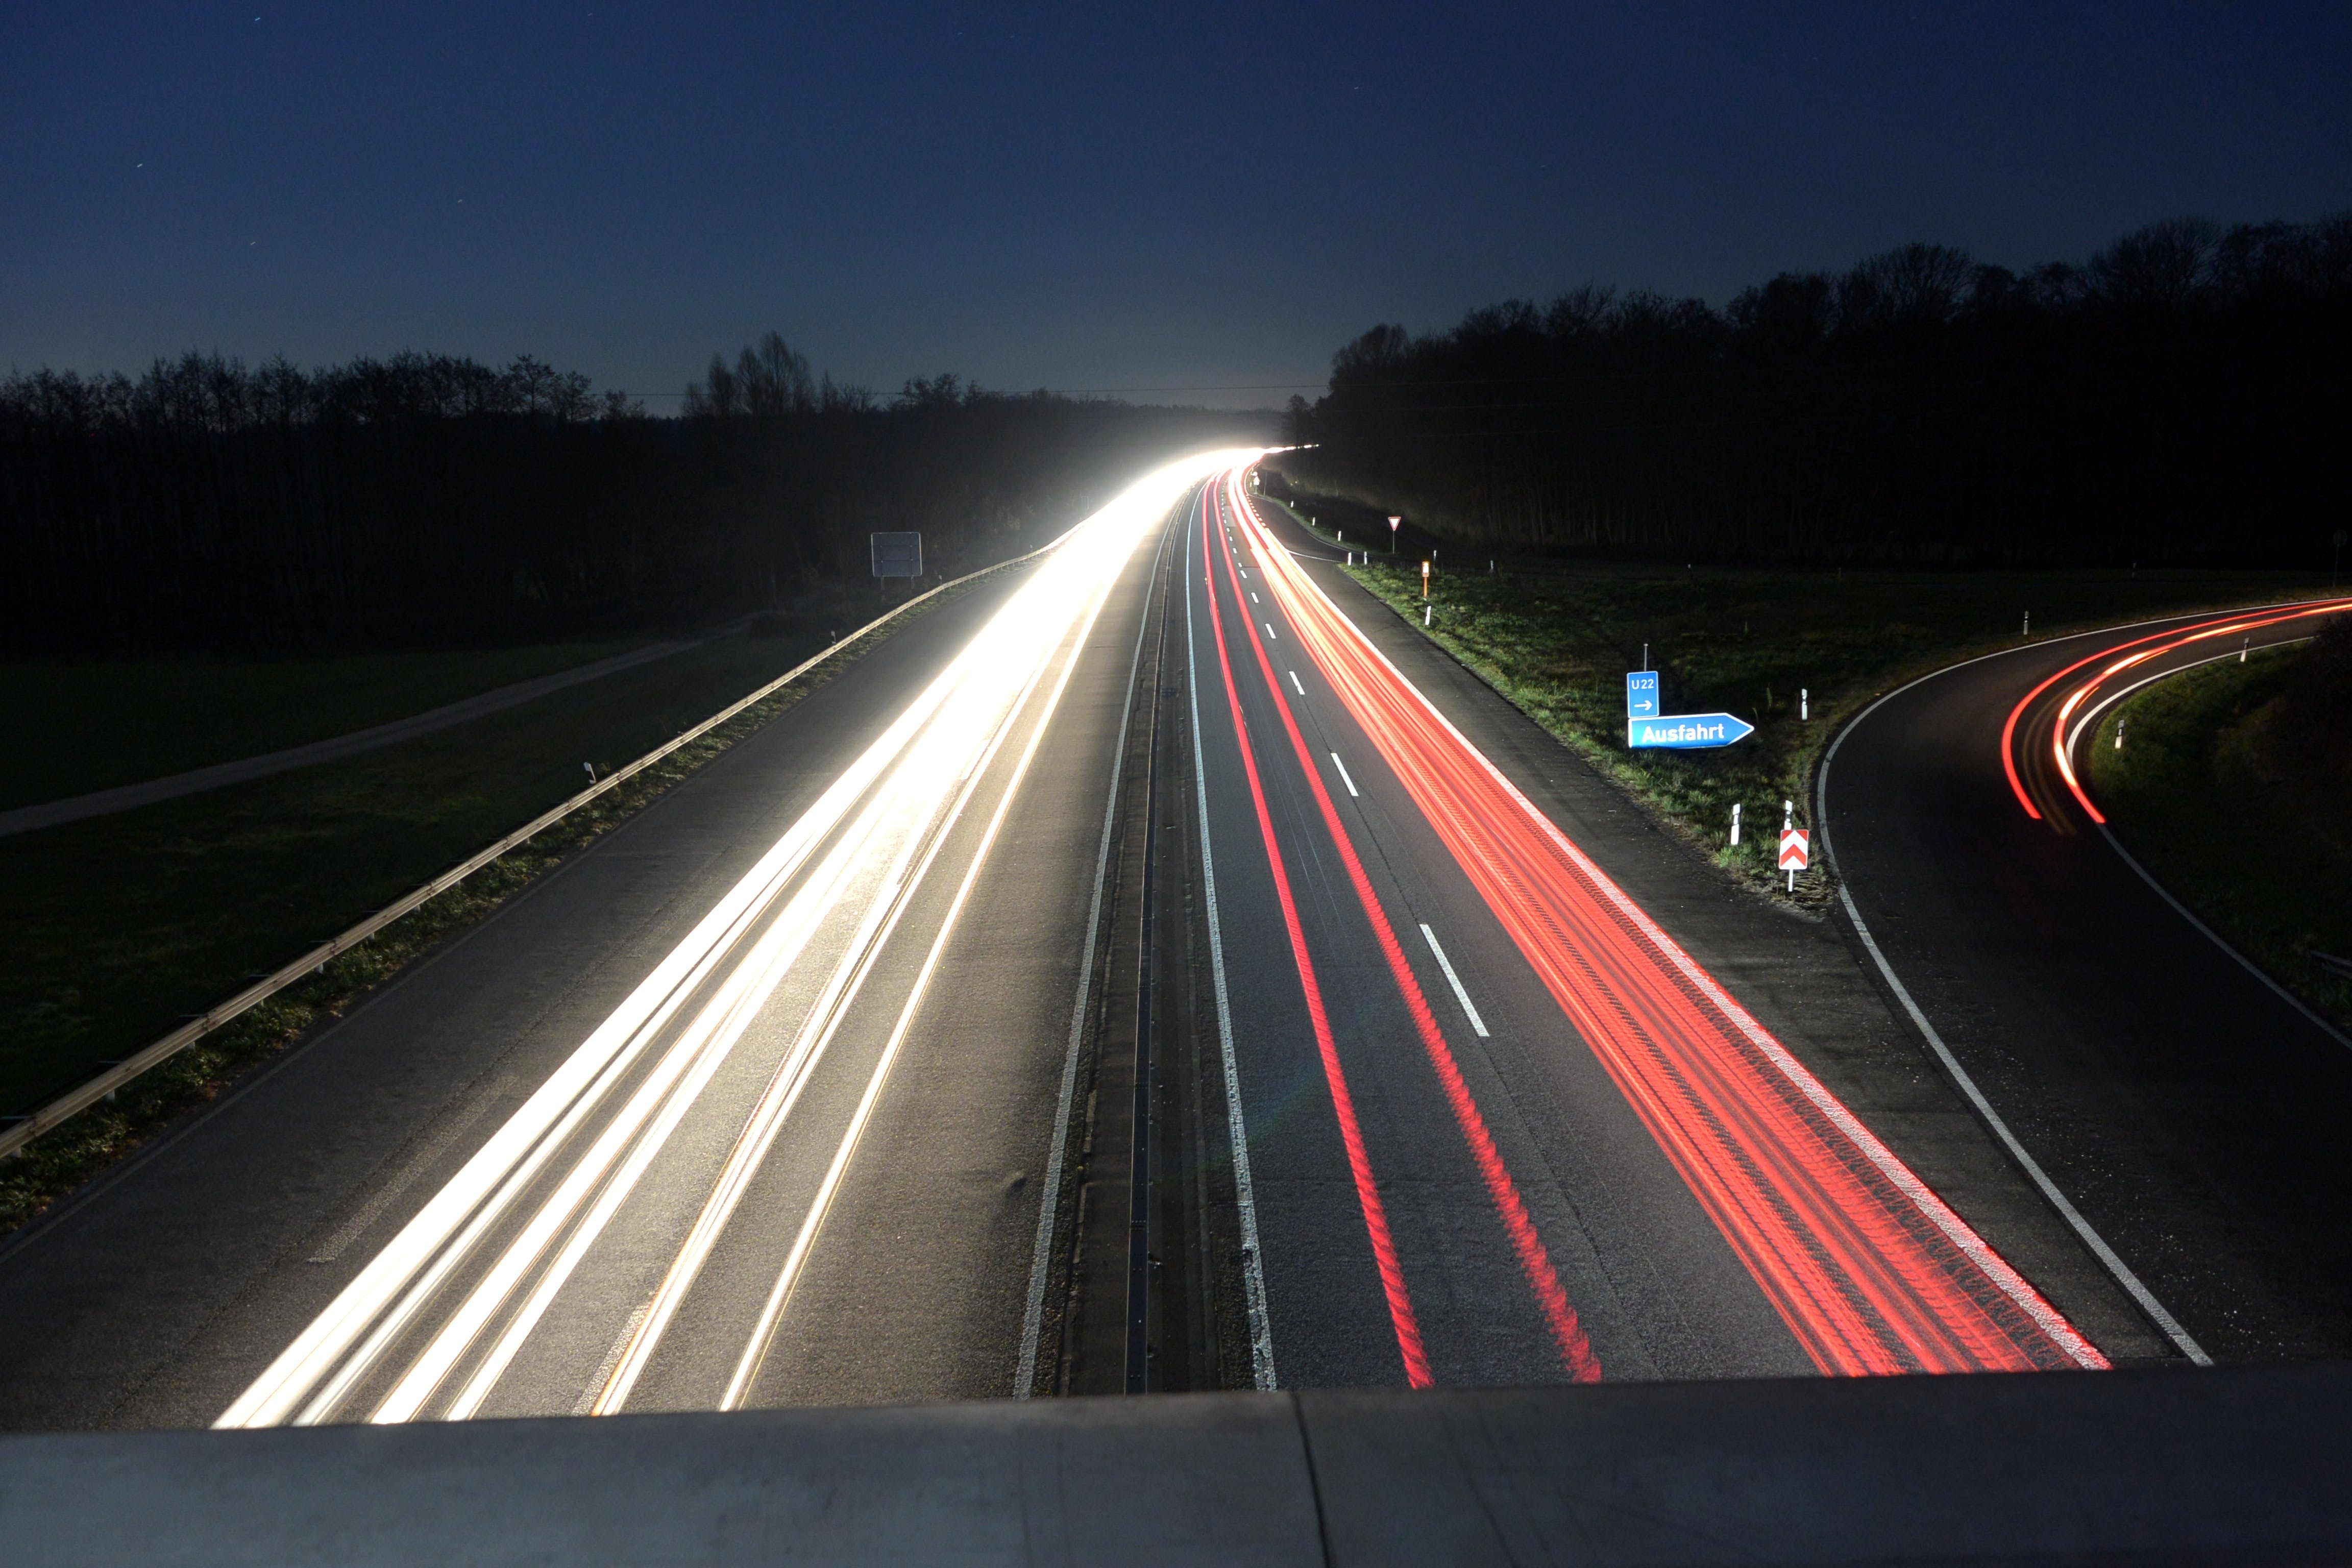 Timelapse of Cars during Nighttime